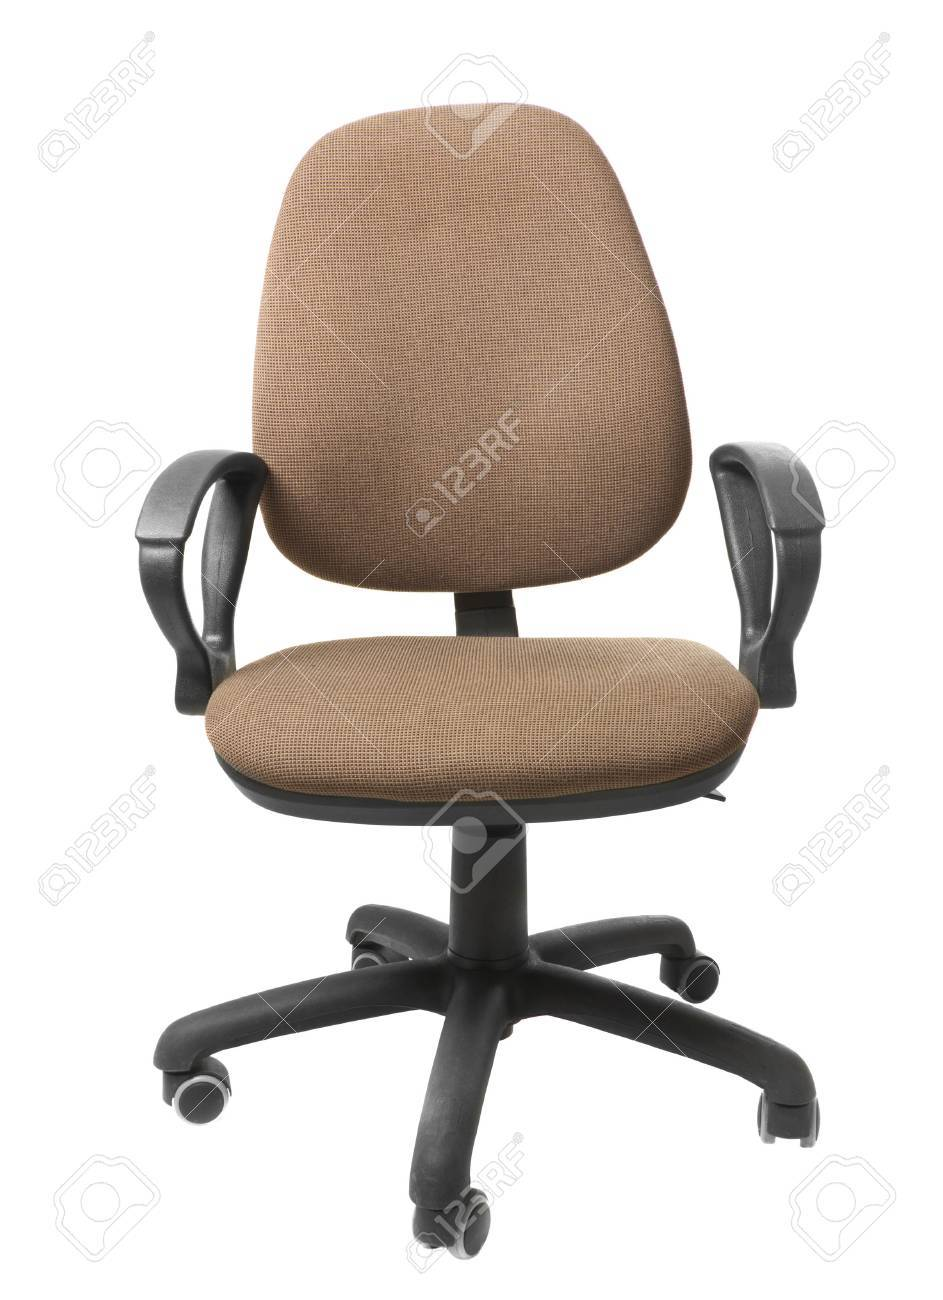 Chair On Wheels Office Chair On Wheels Isolated